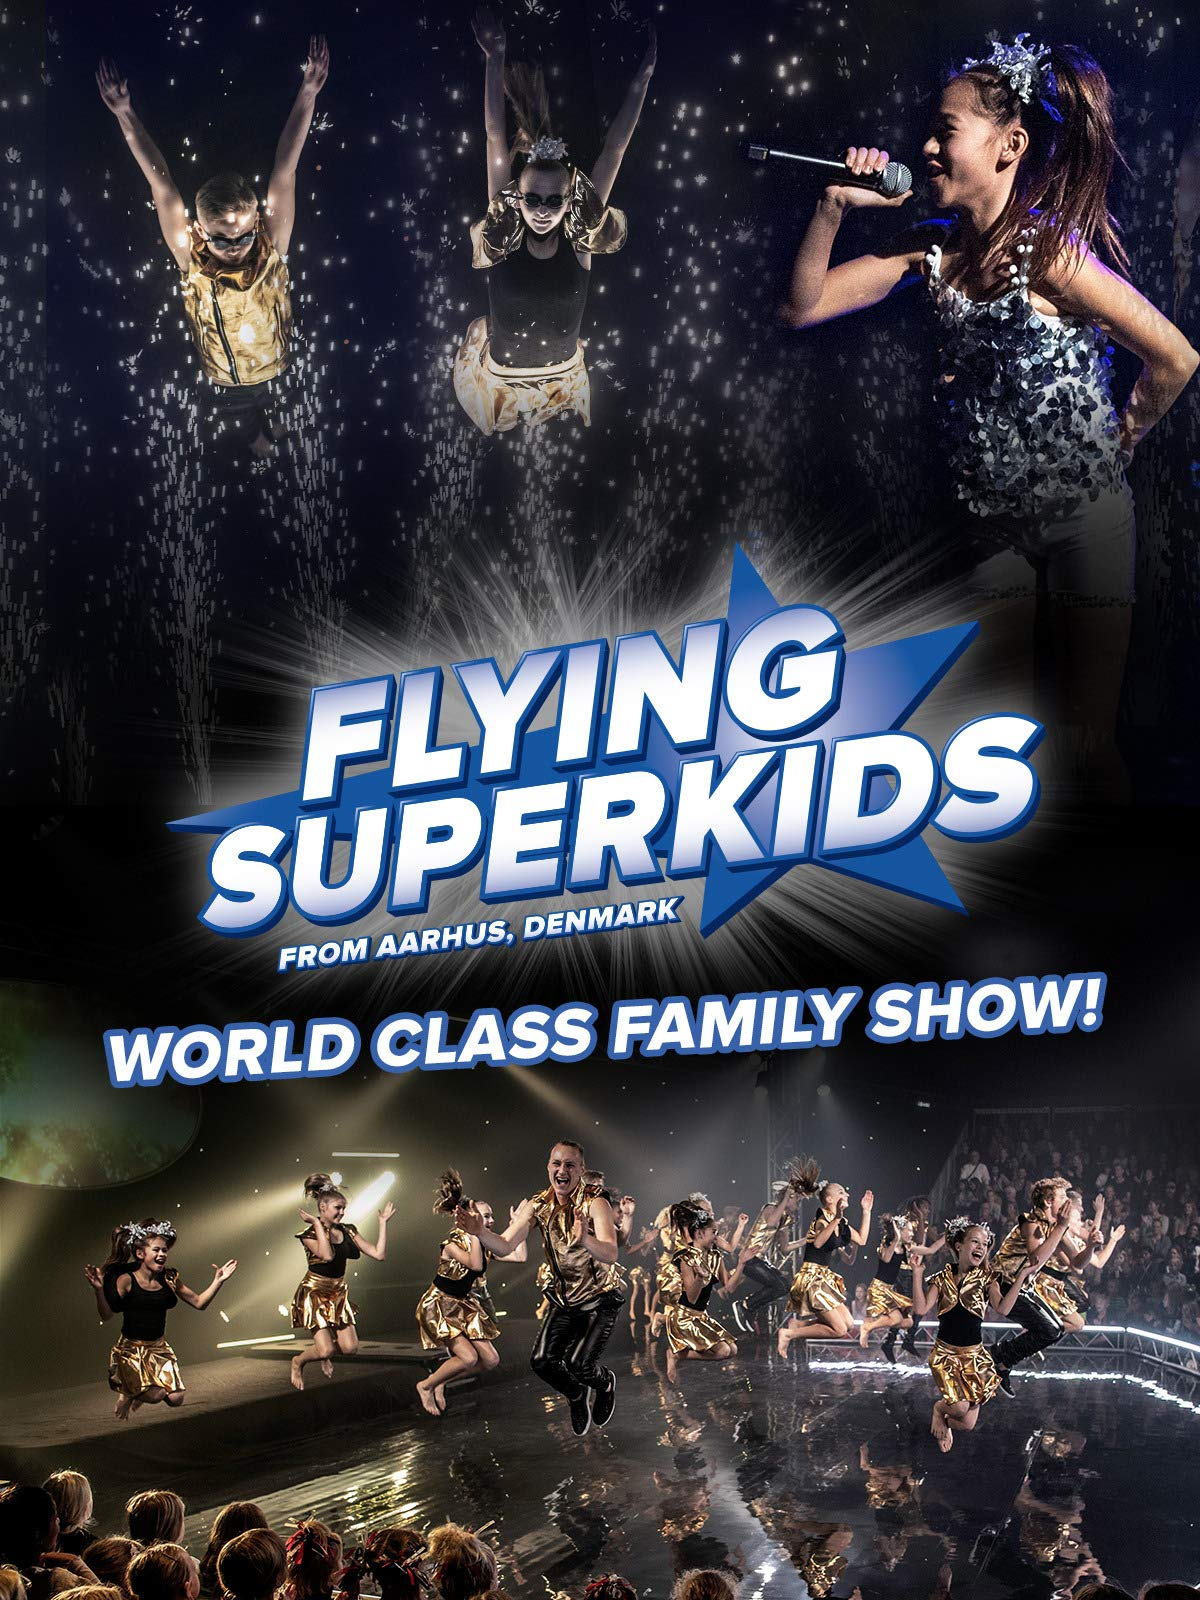 Flying Superkids - World Class Family Show